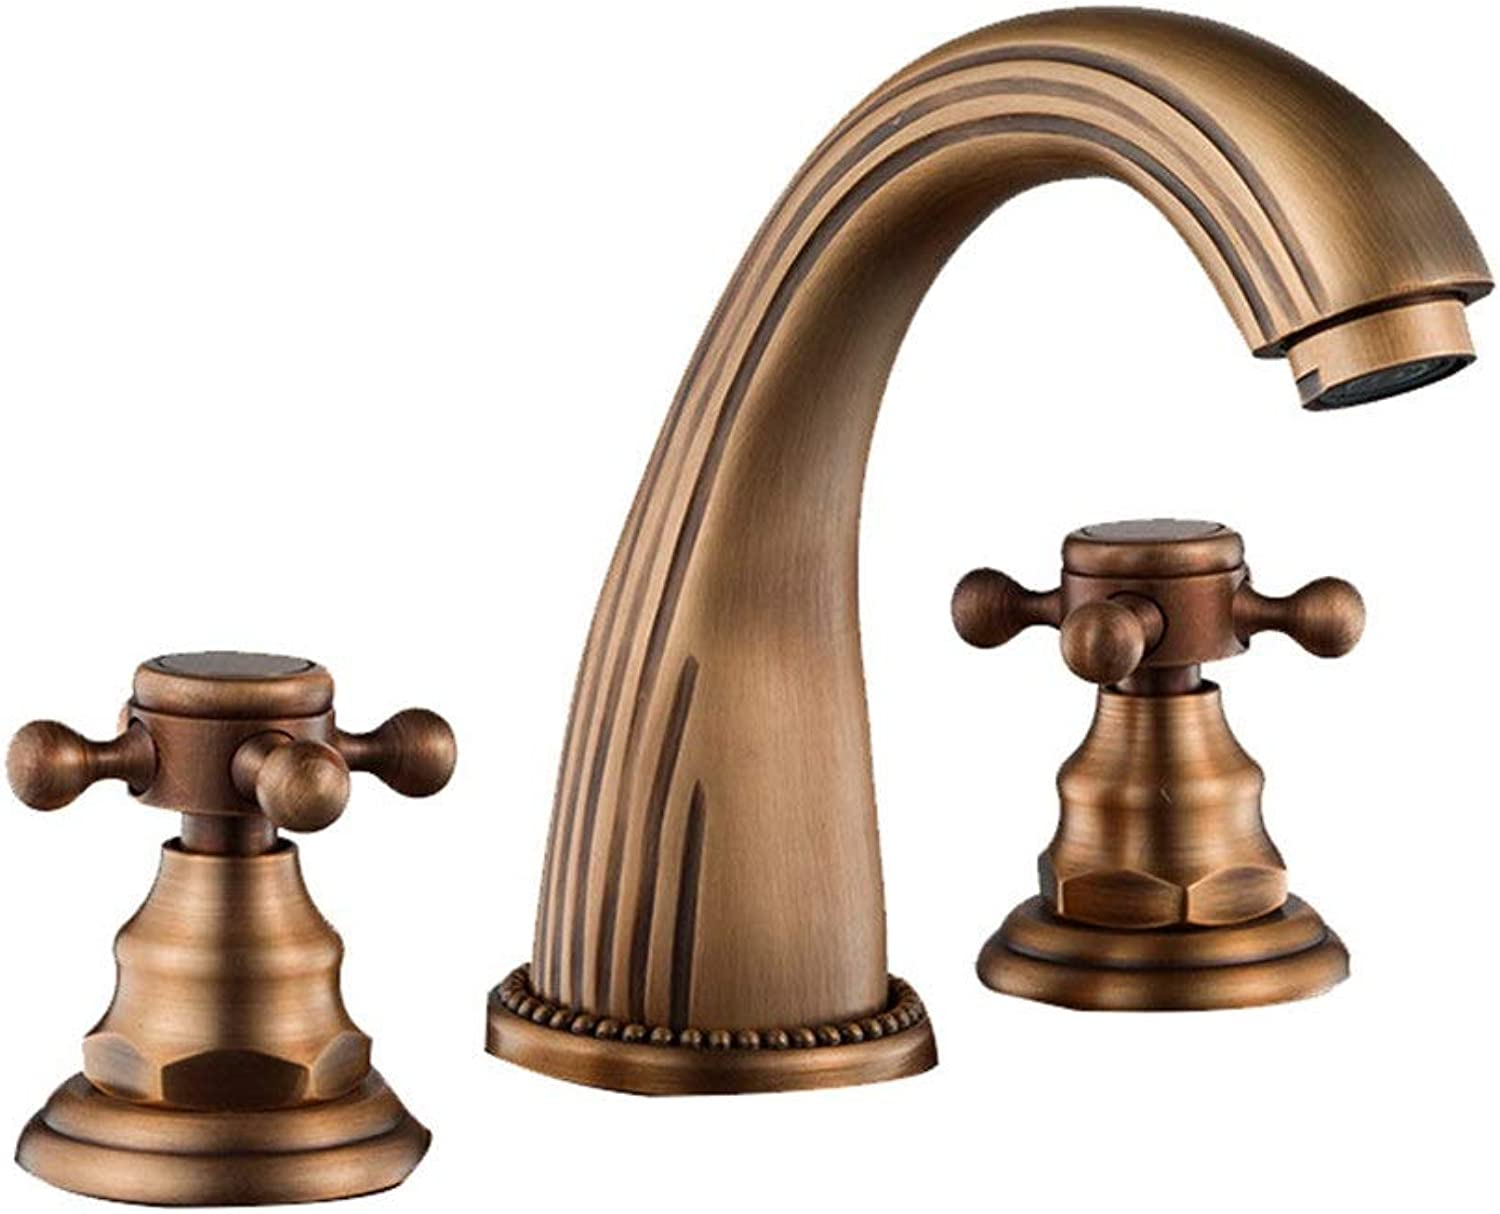 Only home Basin faucet, three-piece faucet Bathroom copper basin three-hole split faucet Split hot and cold faucet (color   A)